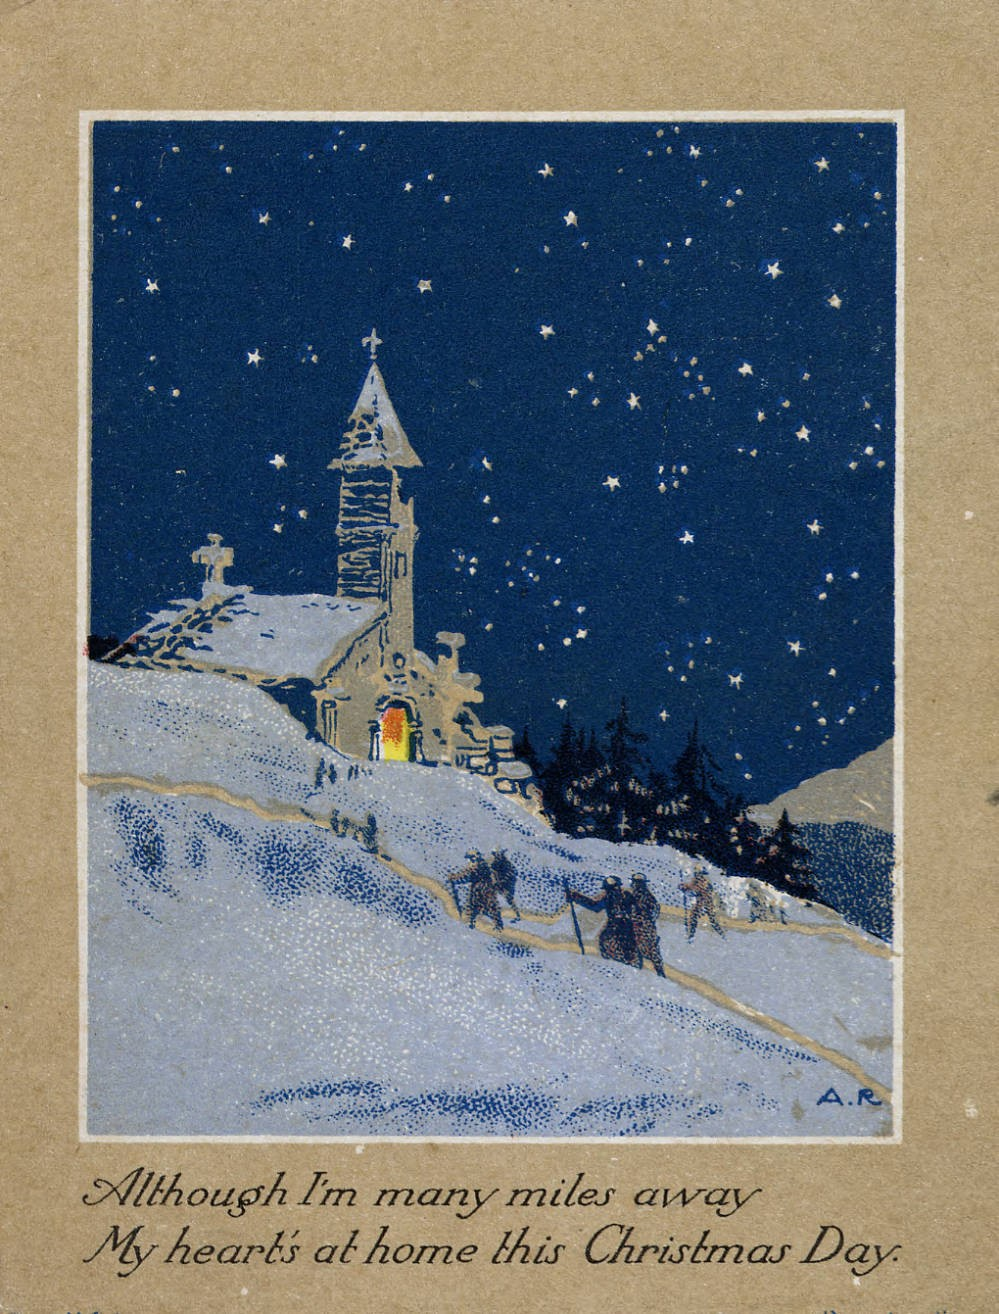 Christmas card sent by Lloyd B. Mignerey to his family on November 22, 1918. Courtesy of Otterbein College via Ohio Memory.